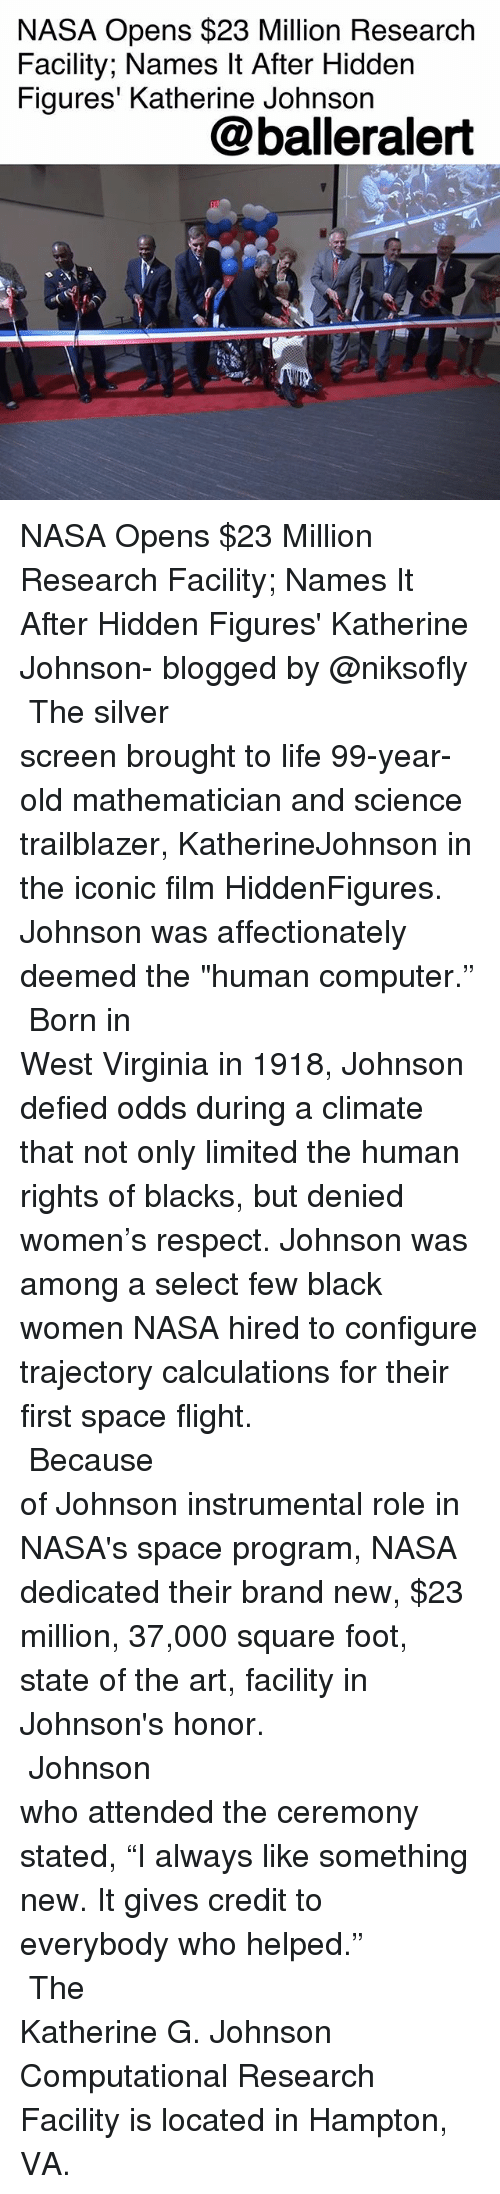 "Life, Memes, and Nasa: NASA Opens $23 Million Research  Facility; Names It After Hidden  Figures' Katherine Johnson  @balleralert NASA Opens $23 Million Research Facility; Names It After Hidden Figures' Katherine Johnson- blogged by @niksofly ⠀⠀⠀⠀⠀⠀⠀⠀⠀⠀⠀⠀⠀⠀⠀⠀⠀⠀⠀⠀⠀⠀⠀⠀⠀⠀⠀⠀⠀⠀⠀⠀⠀ The silver screen brought to life 99-year-old mathematician and science trailblazer, KatherineJohnson in the iconic film HiddenFigures. Johnson was affectionately deemed the ""human computer."" ⠀⠀⠀⠀⠀⠀⠀⠀⠀⠀⠀⠀⠀⠀⠀⠀⠀⠀⠀⠀⠀⠀⠀⠀⠀⠀⠀⠀⠀⠀⠀⠀⠀ Born in West Virginia in 1918, Johnson defied odds during a climate that not only limited the human rights of blacks, but denied women's respect. Johnson was among a select few black women NASA hired to configure trajectory calculations for their first space flight. ⠀⠀⠀⠀⠀⠀⠀⠀⠀⠀⠀⠀⠀⠀⠀⠀⠀⠀⠀⠀⠀⠀⠀⠀⠀⠀⠀⠀⠀⠀⠀⠀⠀ Because of Johnson instrumental role in NASA's space program, NASA dedicated their brand new, $23 million, 37,000 square foot, state of the art, facility in Johnson's honor. ⠀⠀⠀⠀⠀⠀⠀⠀⠀⠀⠀⠀⠀⠀⠀⠀⠀⠀⠀⠀⠀⠀⠀⠀⠀⠀⠀⠀⠀⠀⠀⠀⠀ Johnson who attended the ceremony stated, ""I always like something new. It gives credit to everybody who helped."" ⠀⠀⠀⠀⠀⠀⠀⠀⠀⠀⠀⠀⠀⠀⠀⠀⠀⠀⠀⠀⠀⠀⠀⠀⠀⠀⠀⠀⠀⠀⠀⠀⠀ The Katherine G. Johnson Computational Research Facility is located in Hampton, VA."